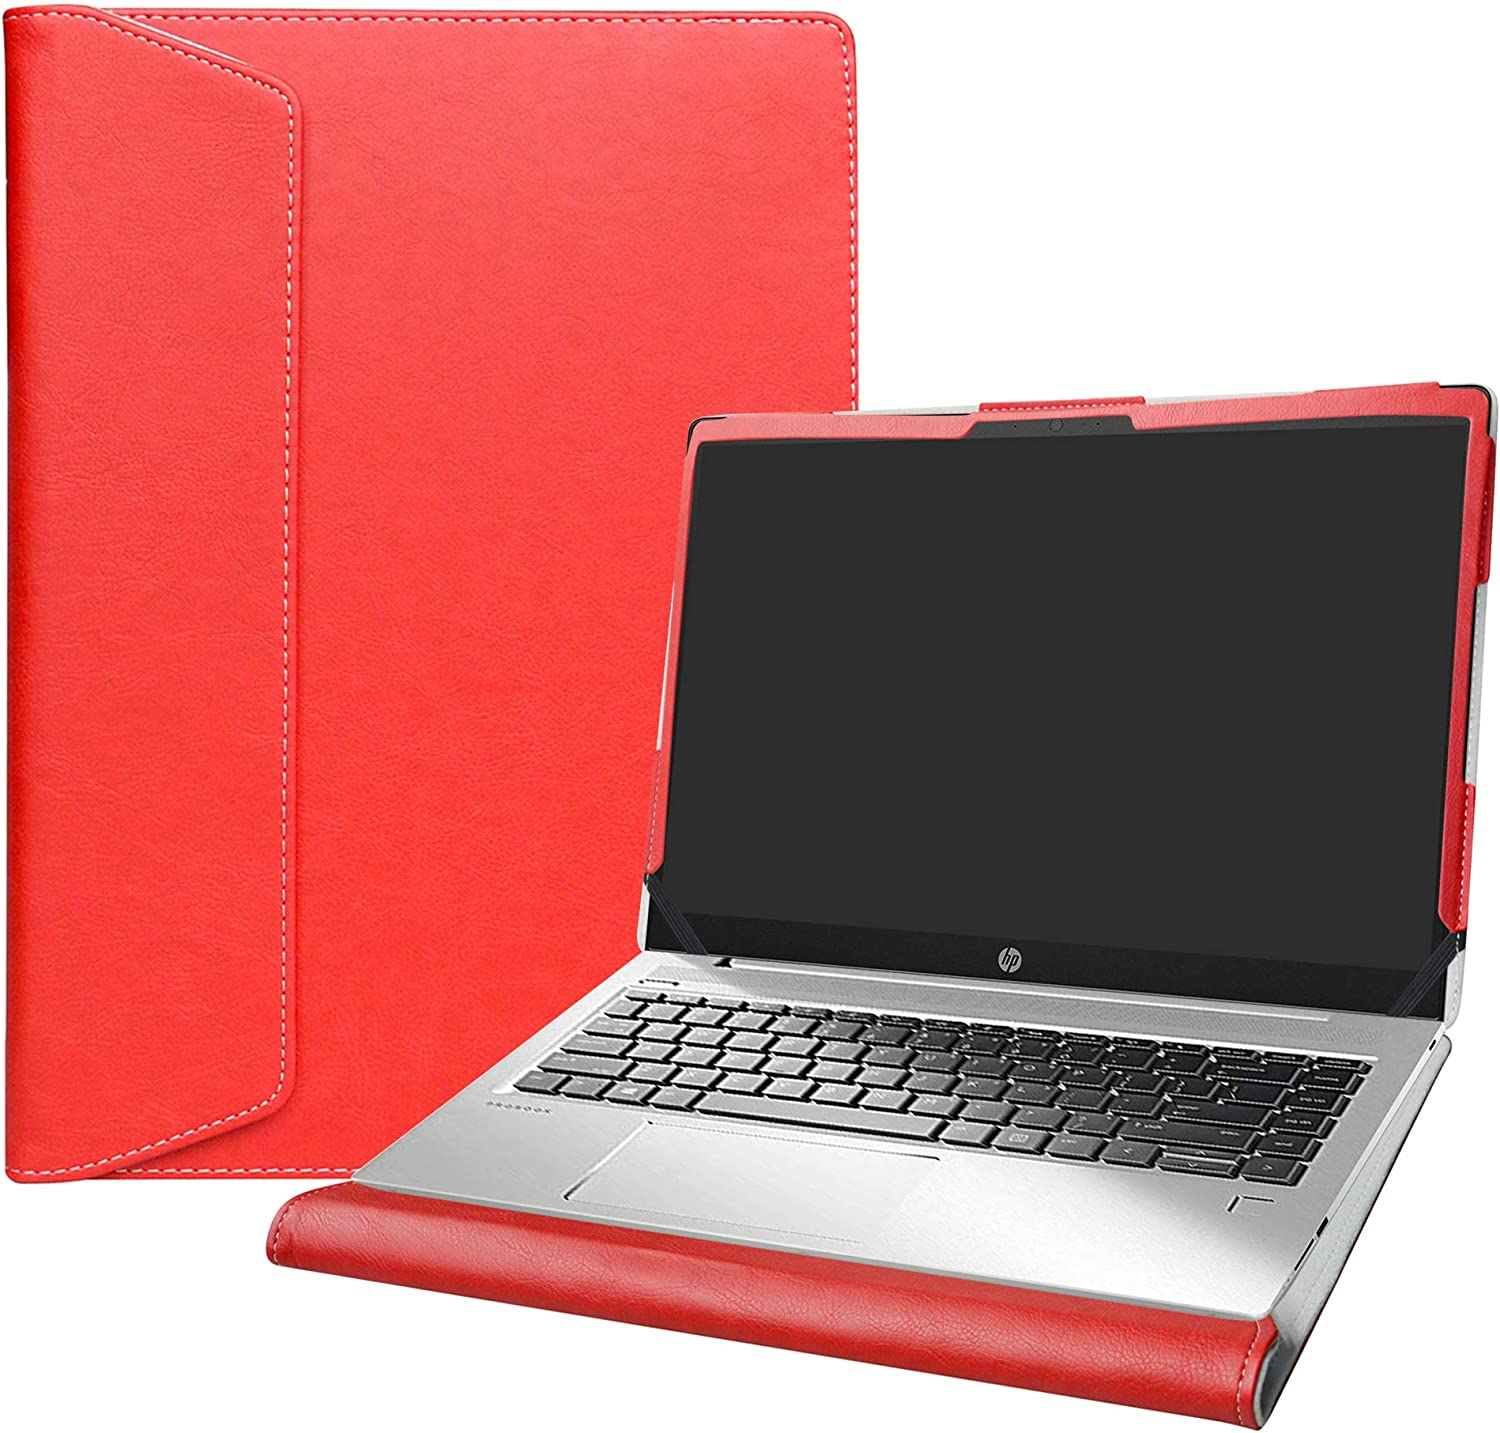 "Alapmk Protective Case Cover for 15.6"" HP Notebook 15 15-dwXXXX (15-DW0043DX 15-DW0030NR)/15-dyXXXX (15-DY1010NR 15-DY1023DX) Laptop[Note:Not fit 15-daXXXX/15-dbXXXX/15-bsXXX/15-bwXXX],Red"